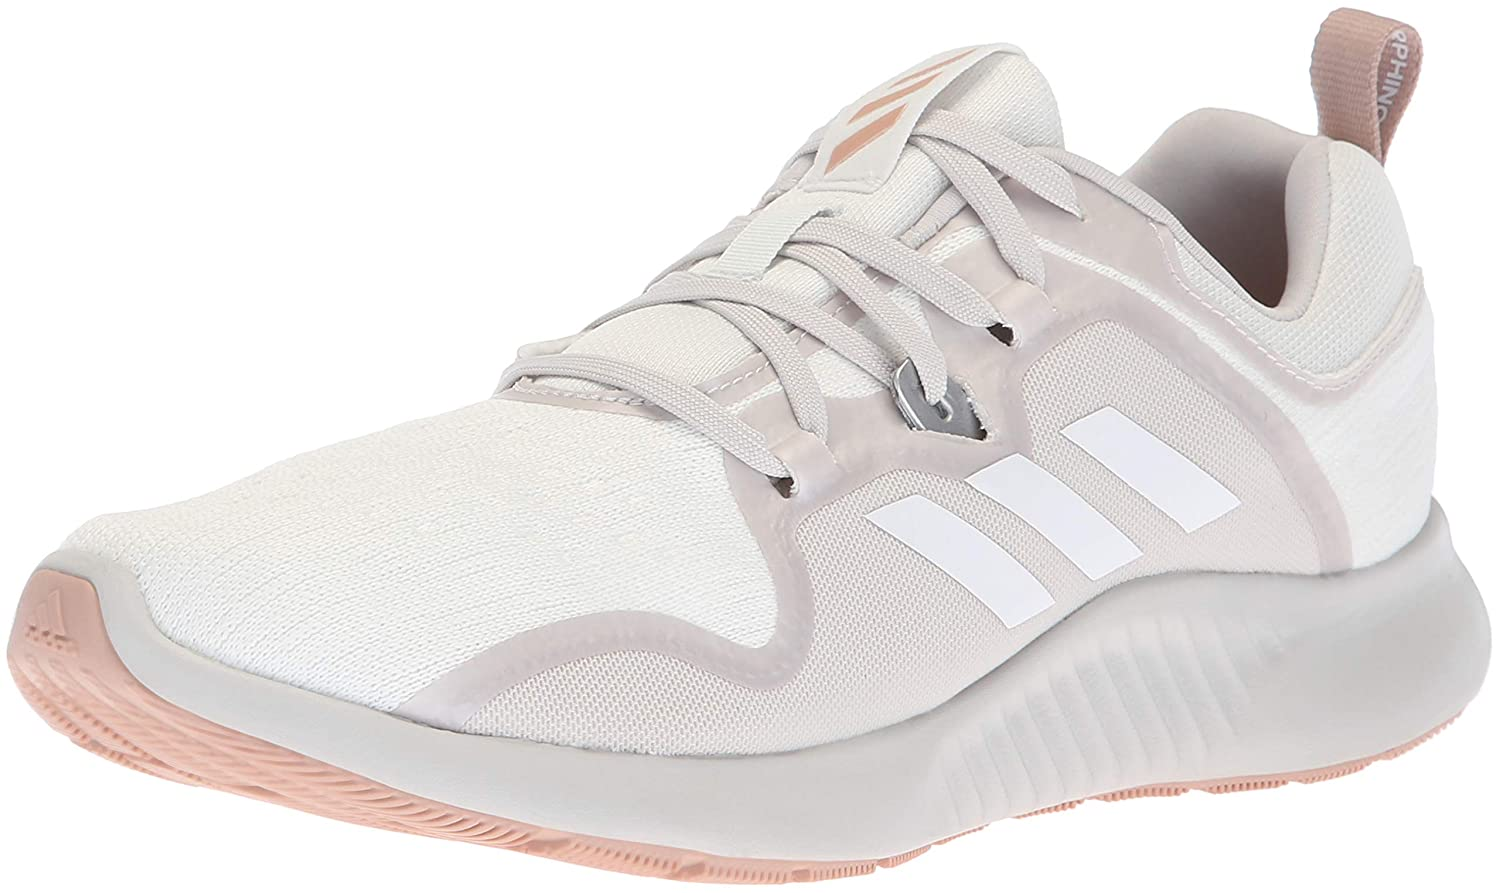 White Grey Ash Pearl Adidas Womens Edgebounce Running shoes